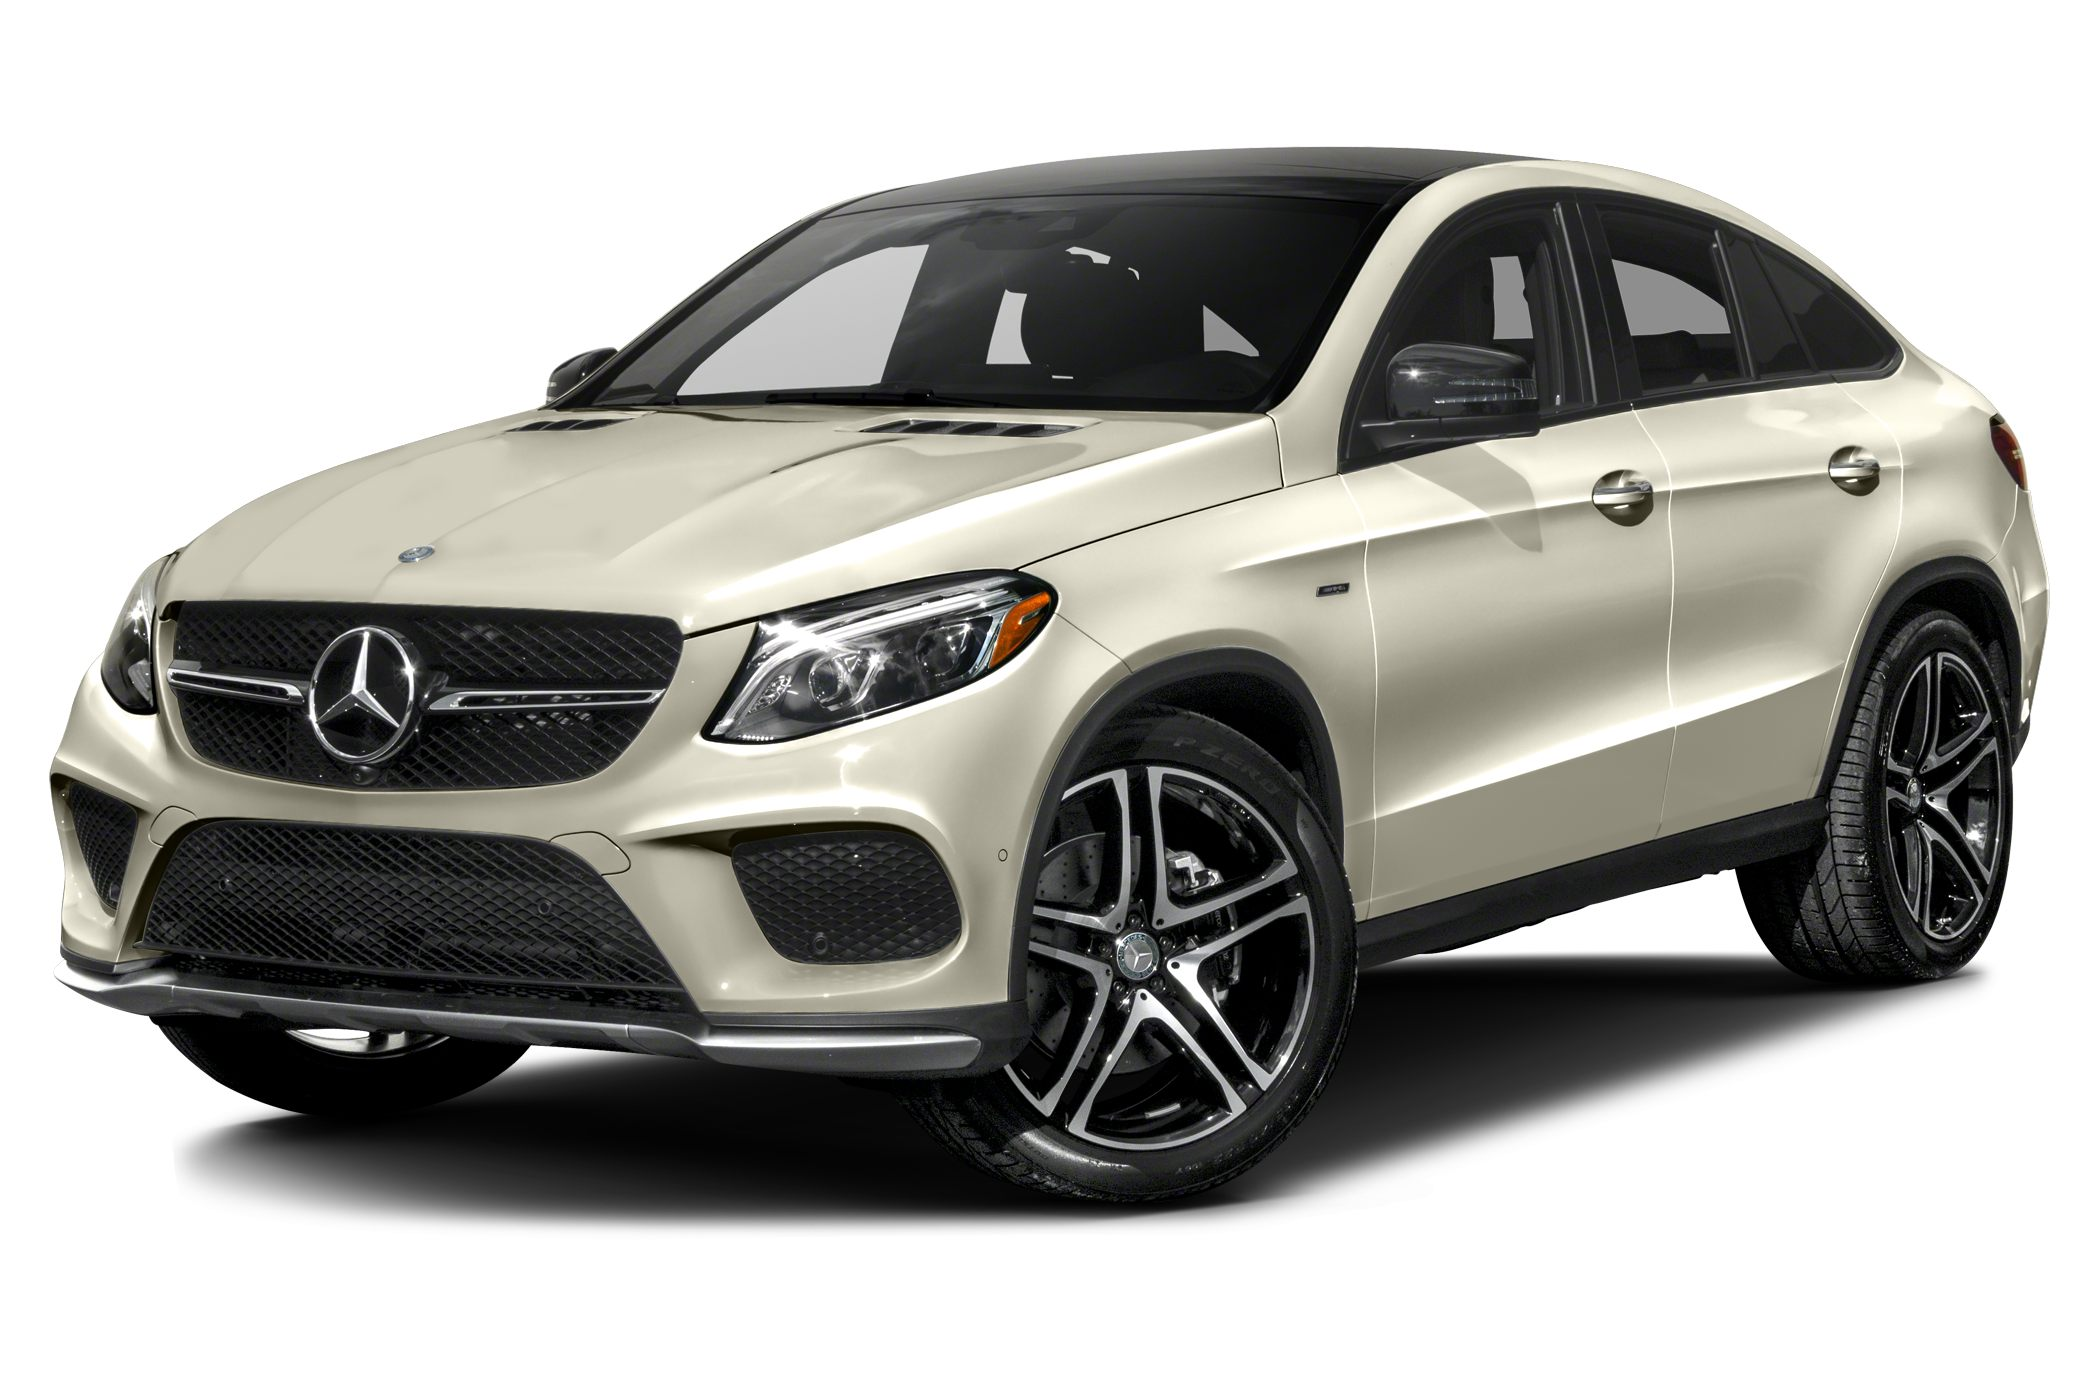 2016 Mercedes Benz GLE Class Base GLE 450 AMG Coupe 4dr All wheel